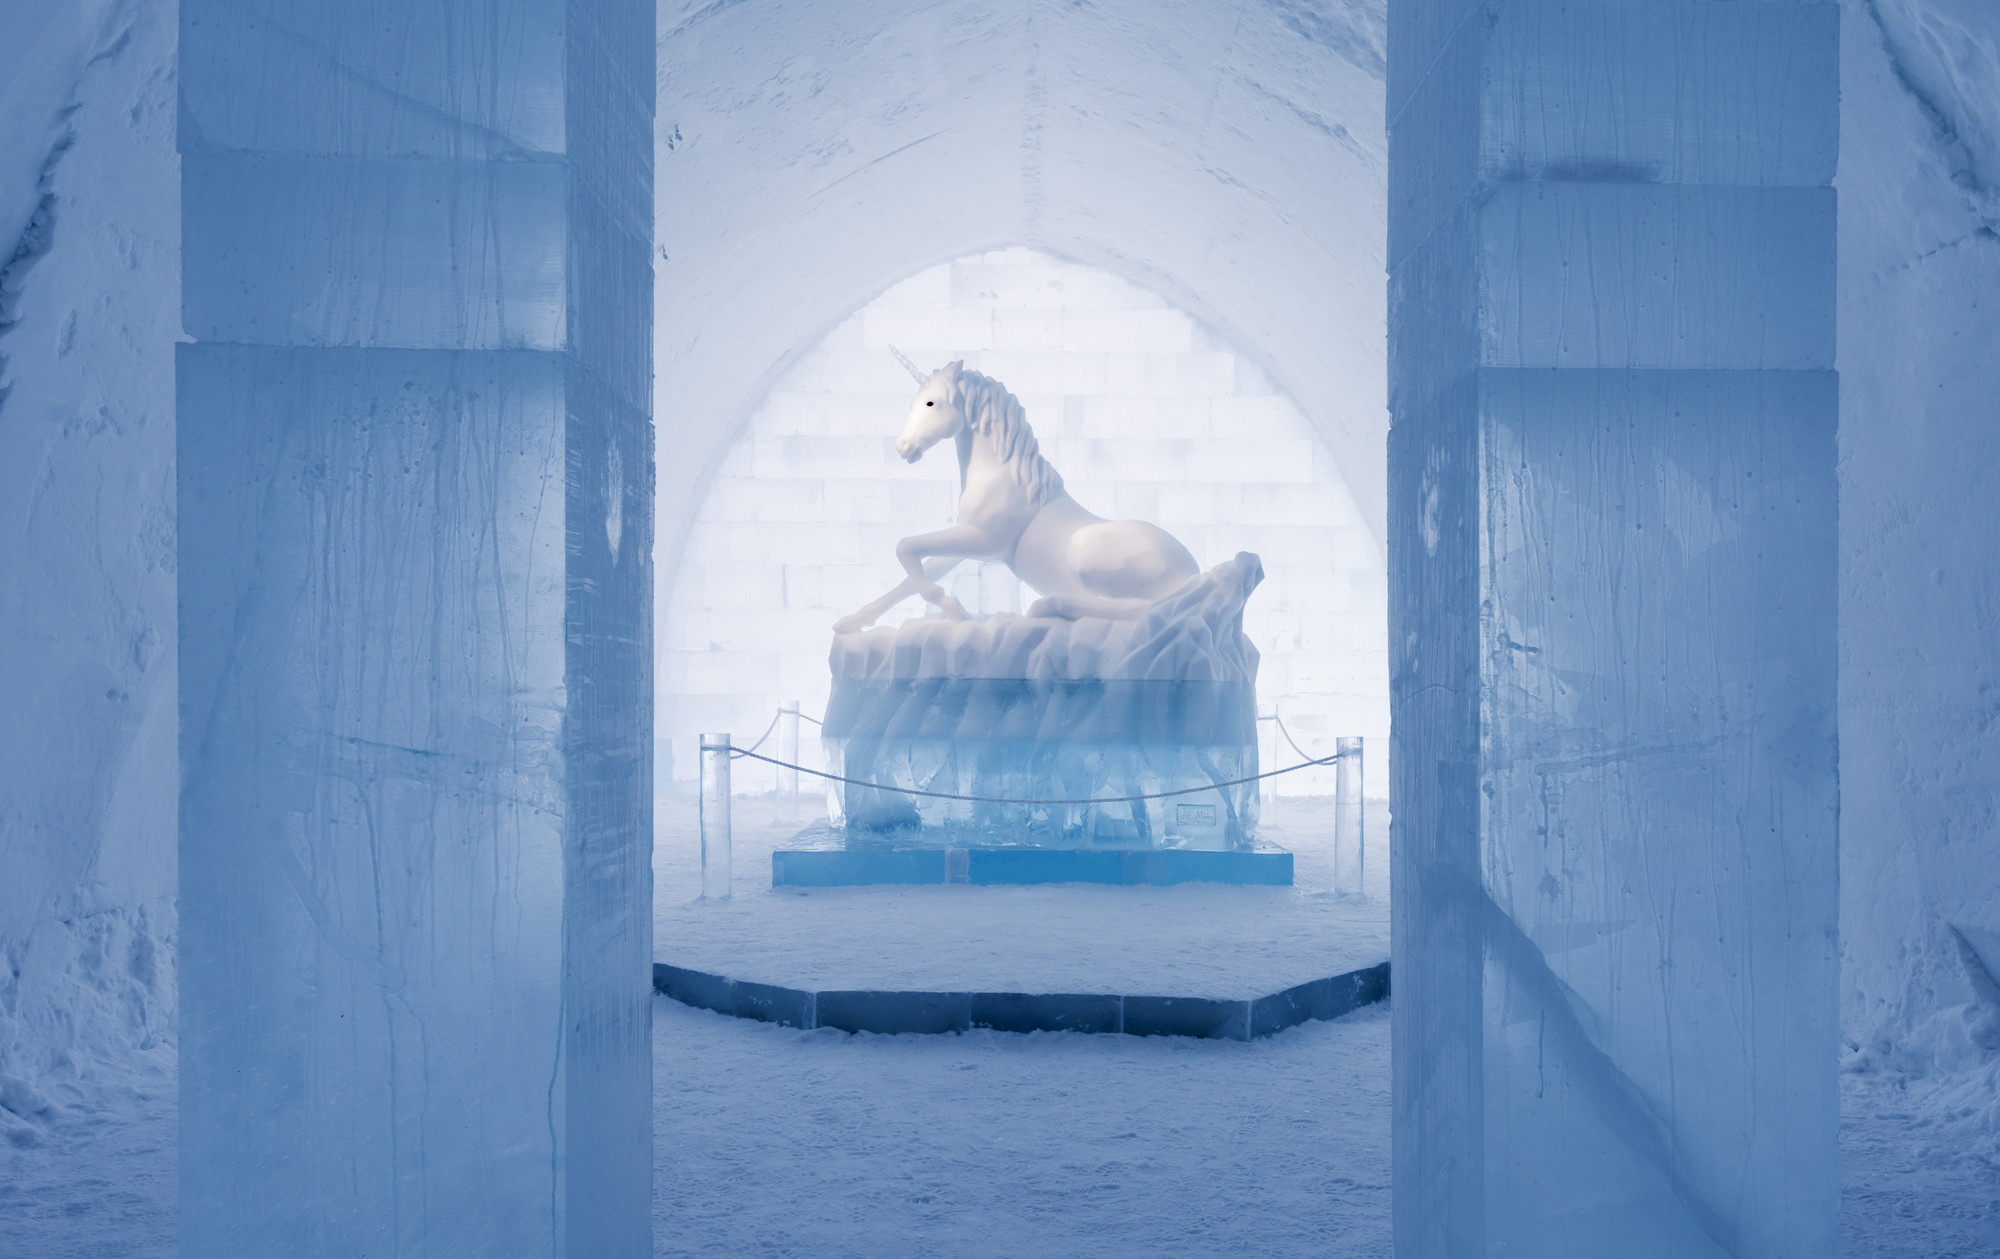 A Place to Chill: Sweden's Ice Hotel, 'Secret Garden' in the main hall of the ICEHOTEL, by artists AnnaSofia Mååg & Alessandro Falca. Image © Christopher Hauser